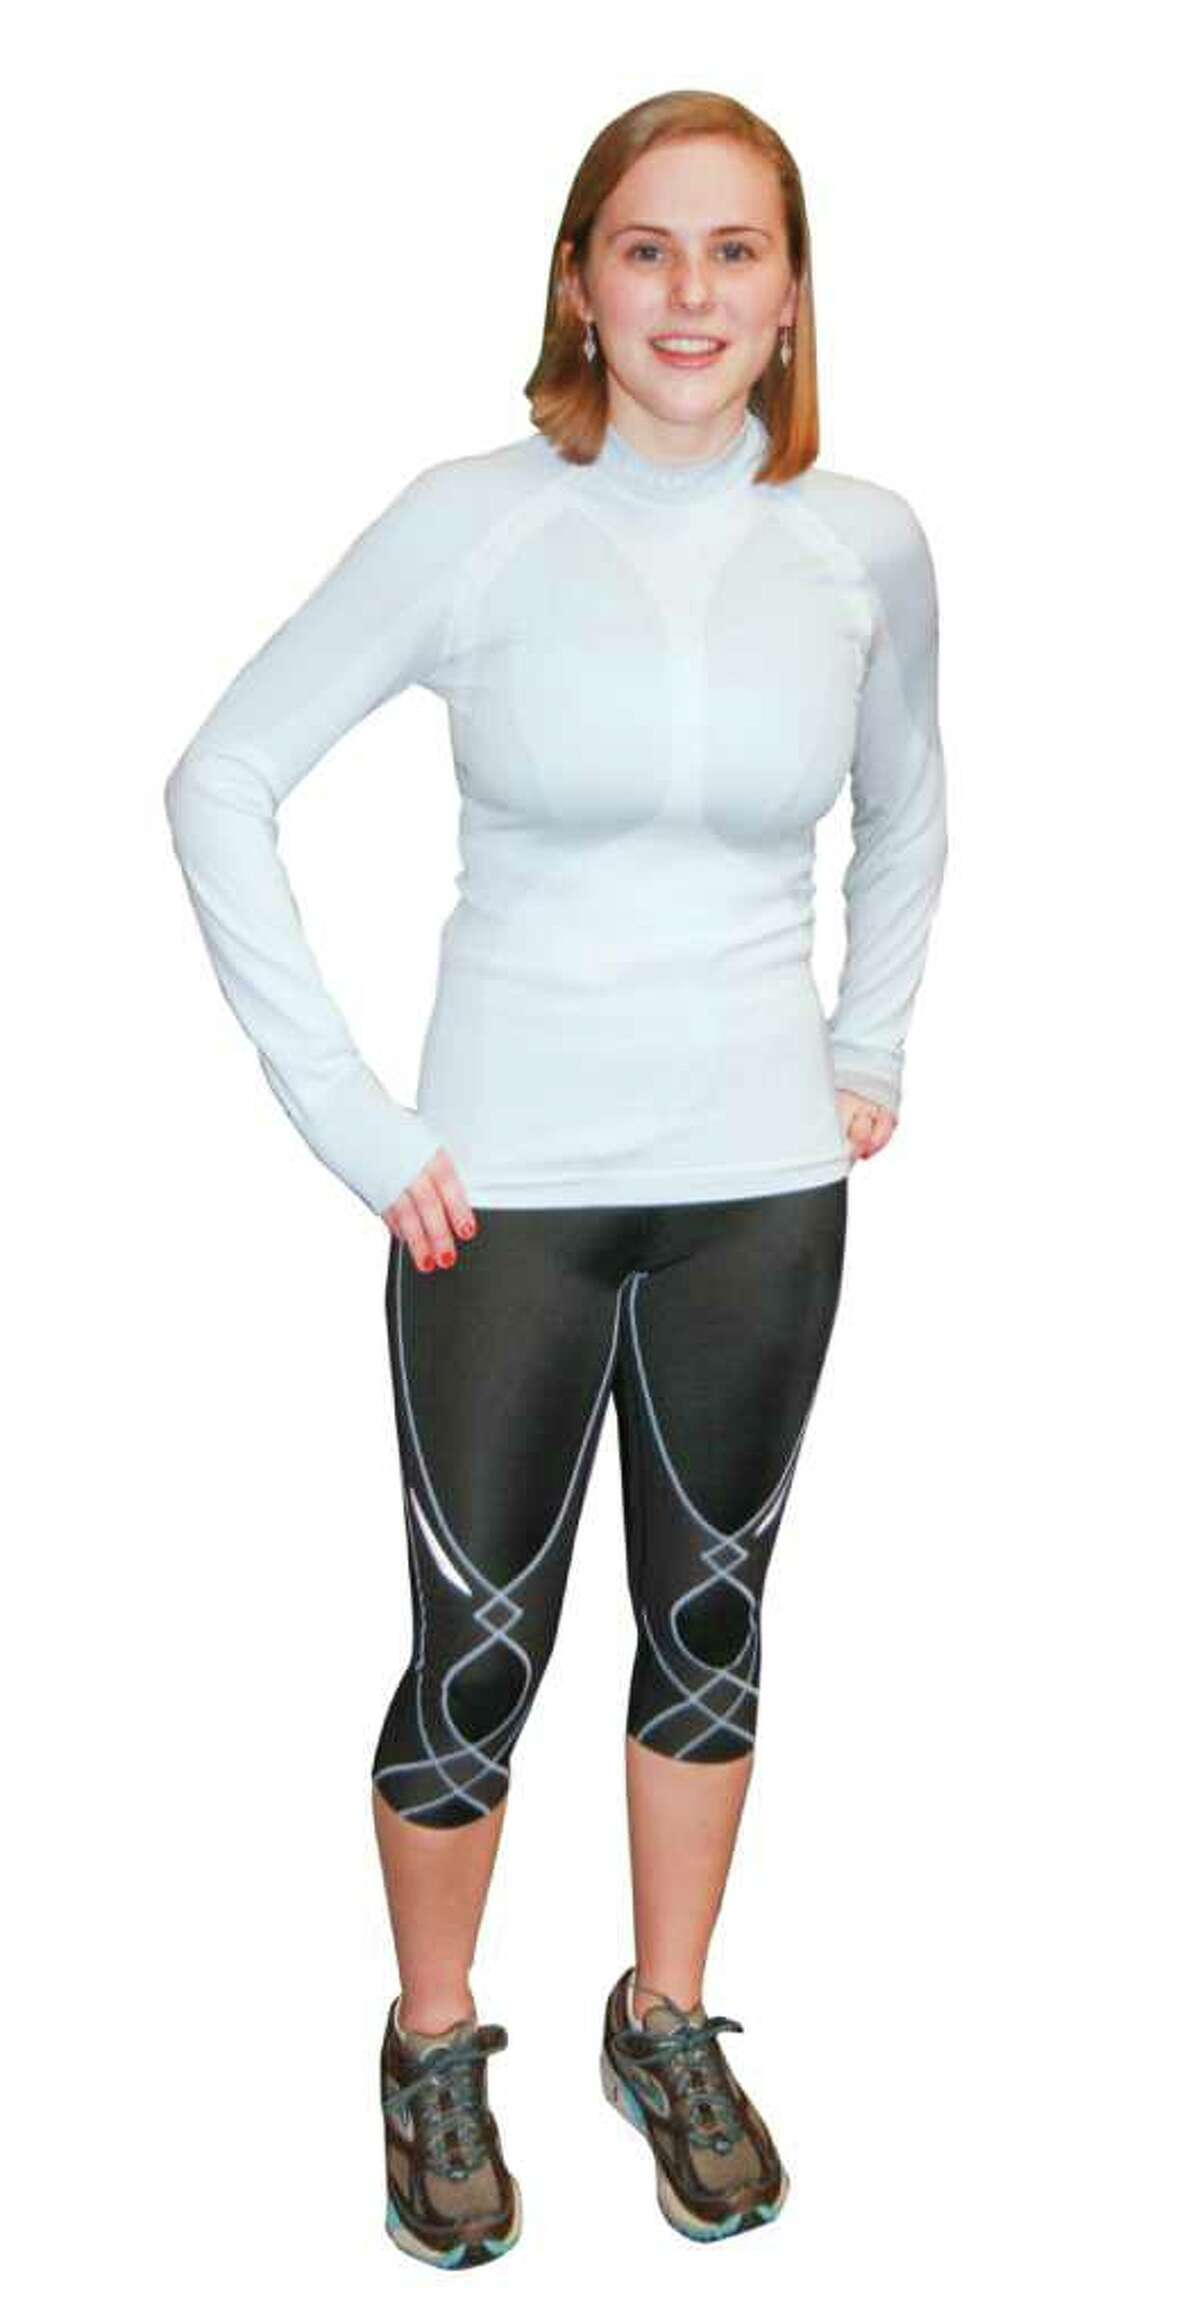 Everyone from runners and cyclists, to people pumping iron and others using exercise equipment are more likely to be sporting sleek, tight workout wear known as compression clothing.